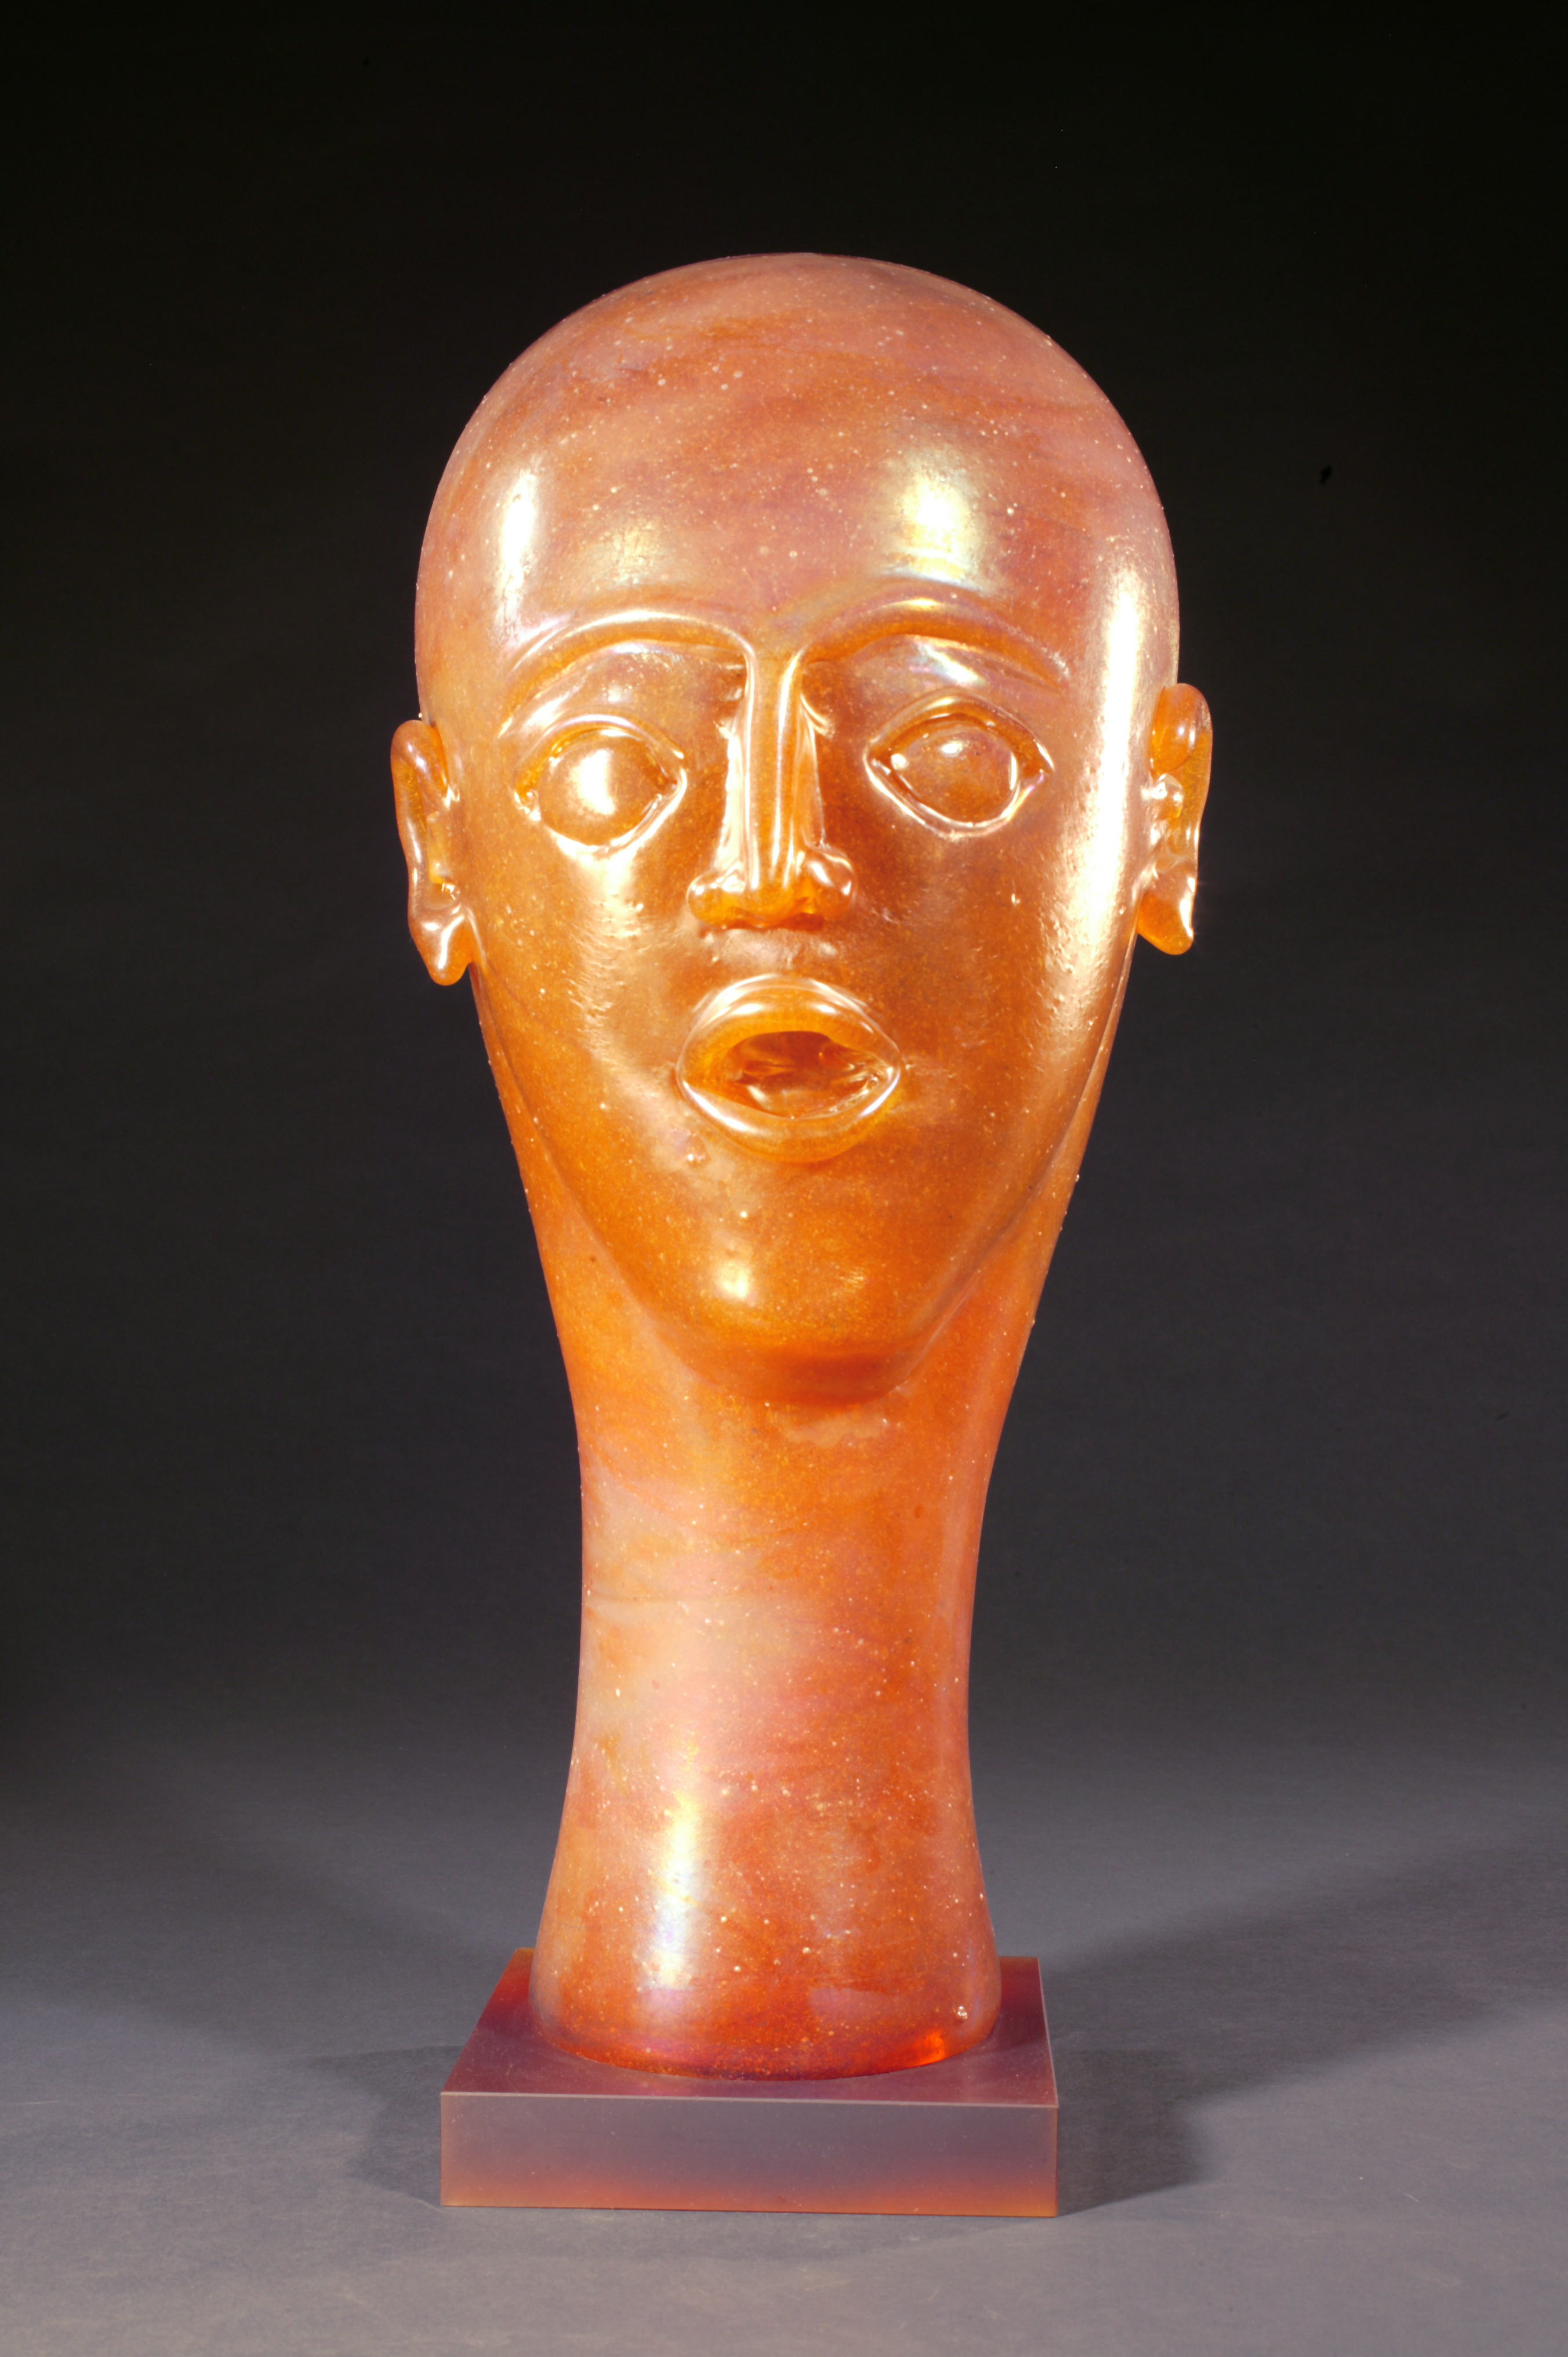 Head  as Egg Iridescent Amber with Cosmic Crown